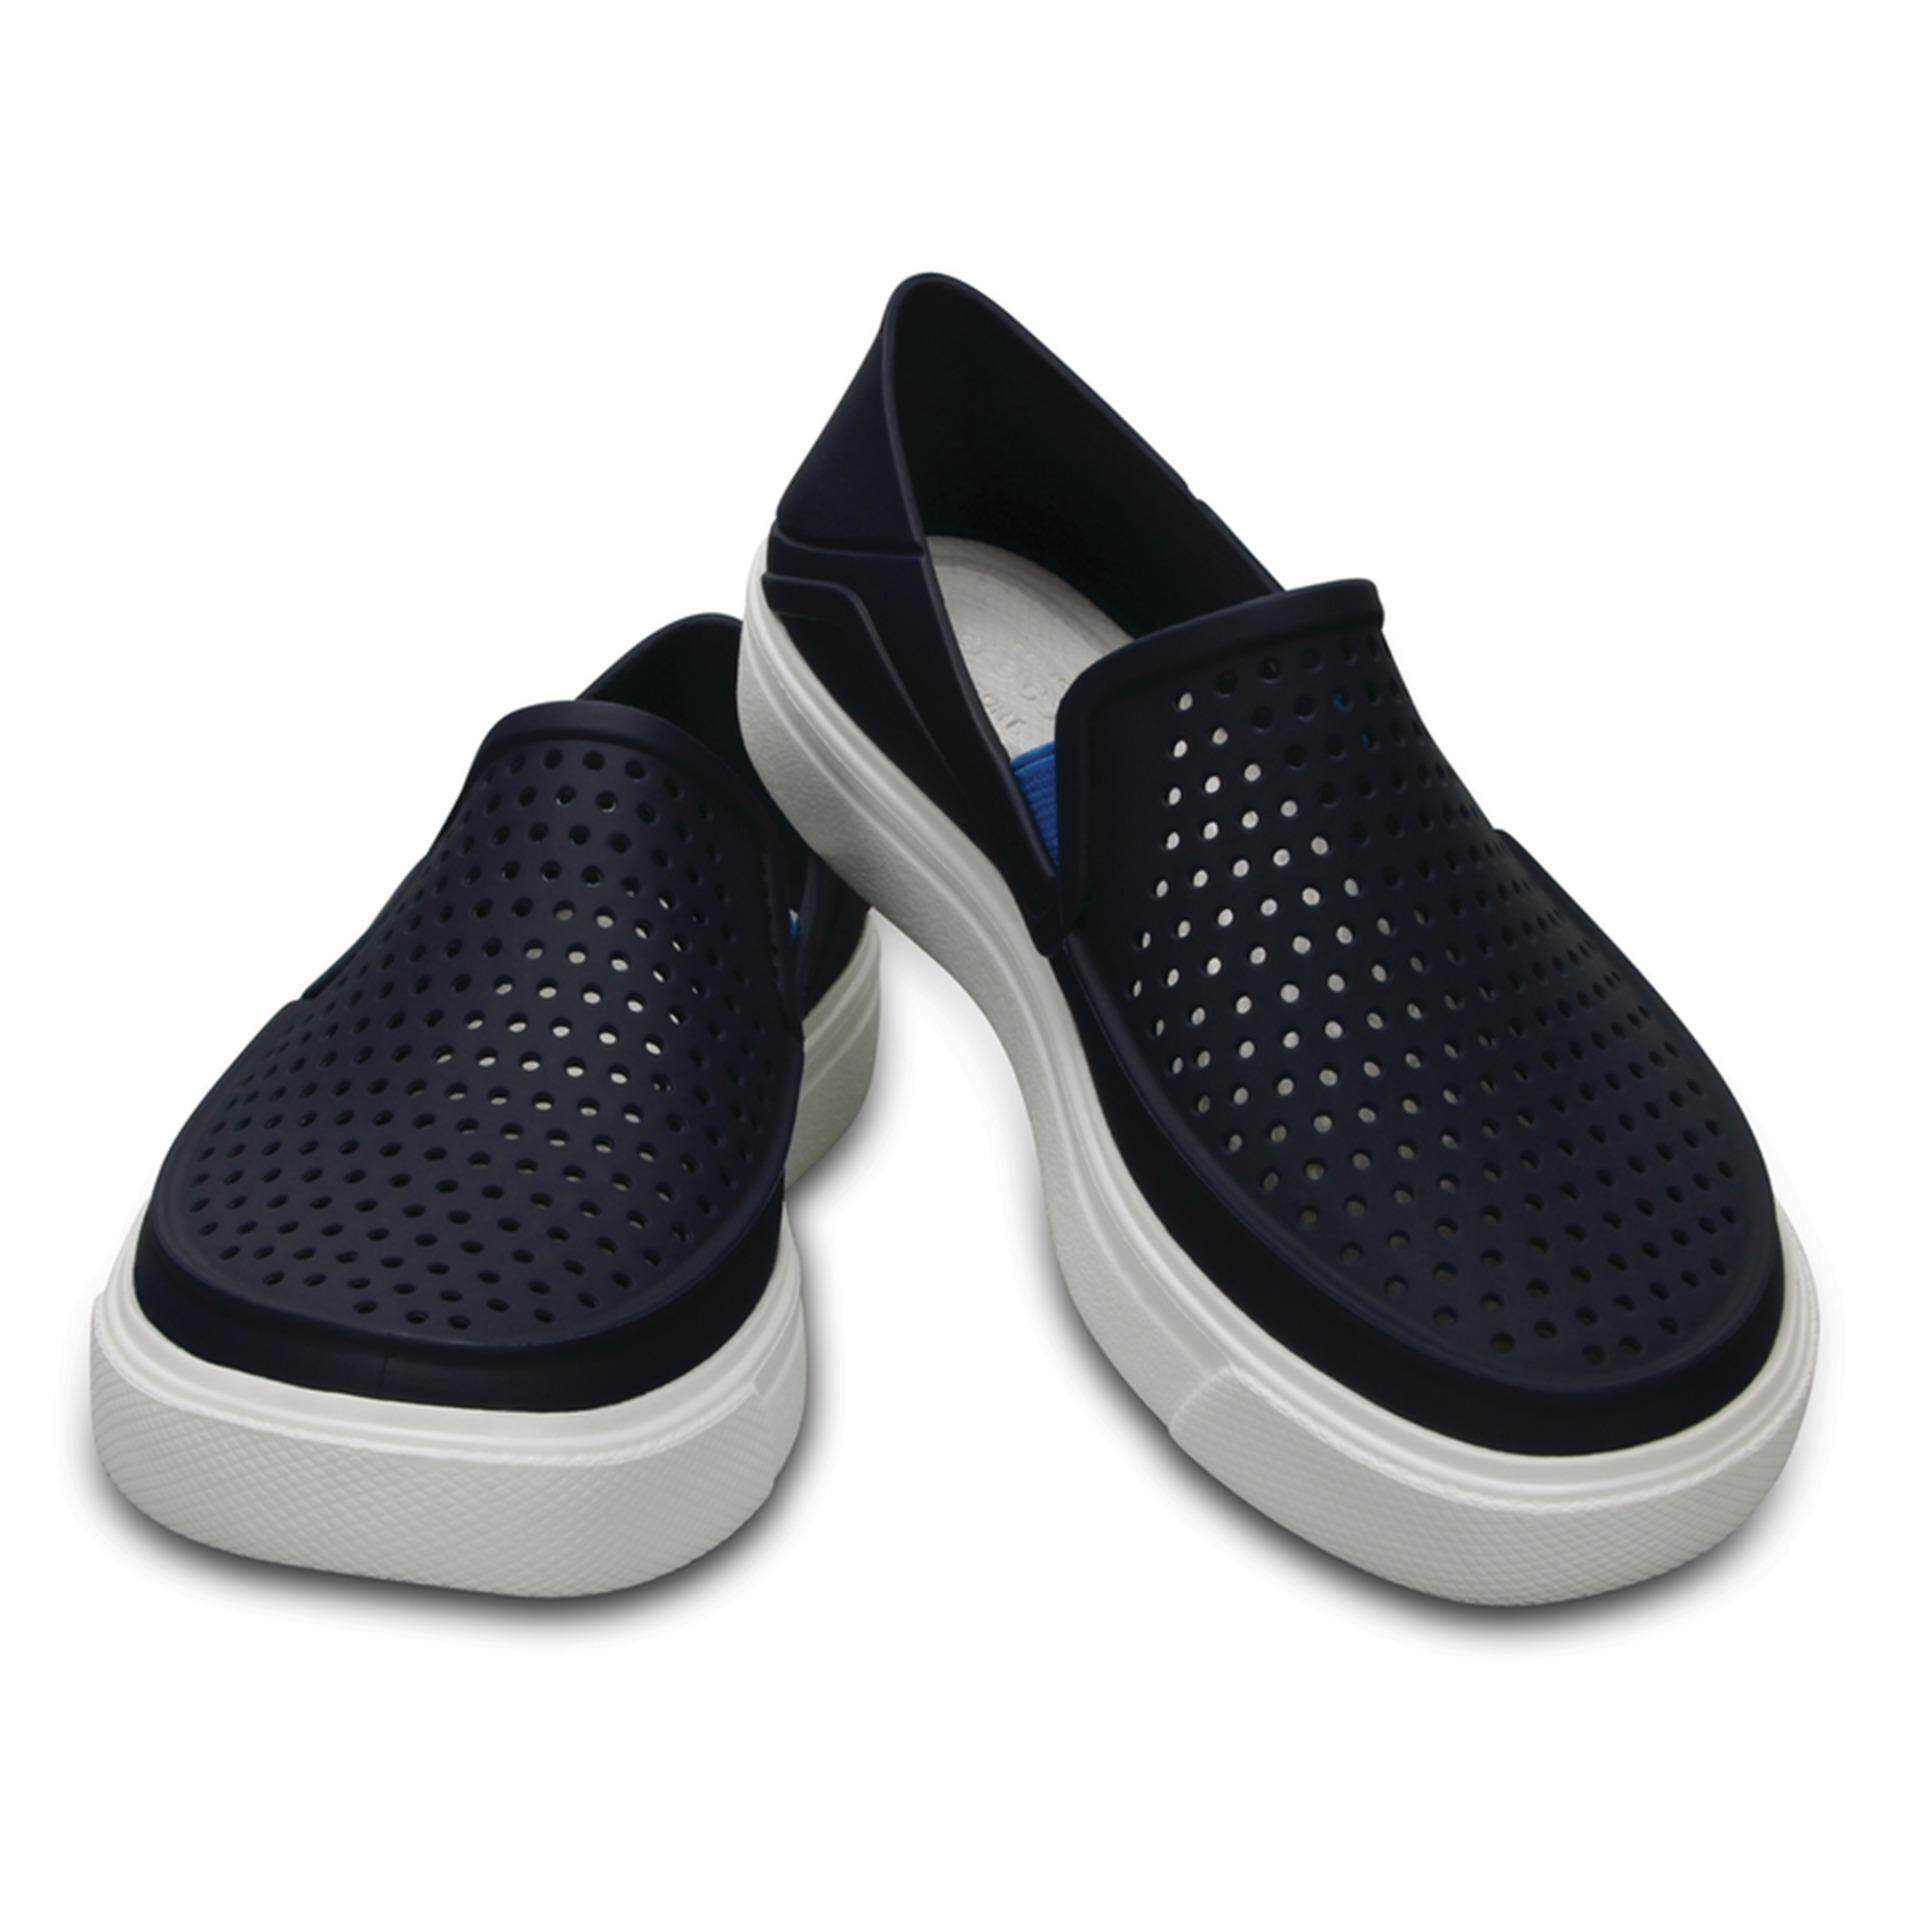 037f6ebb13 CROCS Products for the Best Prices in Malaysia